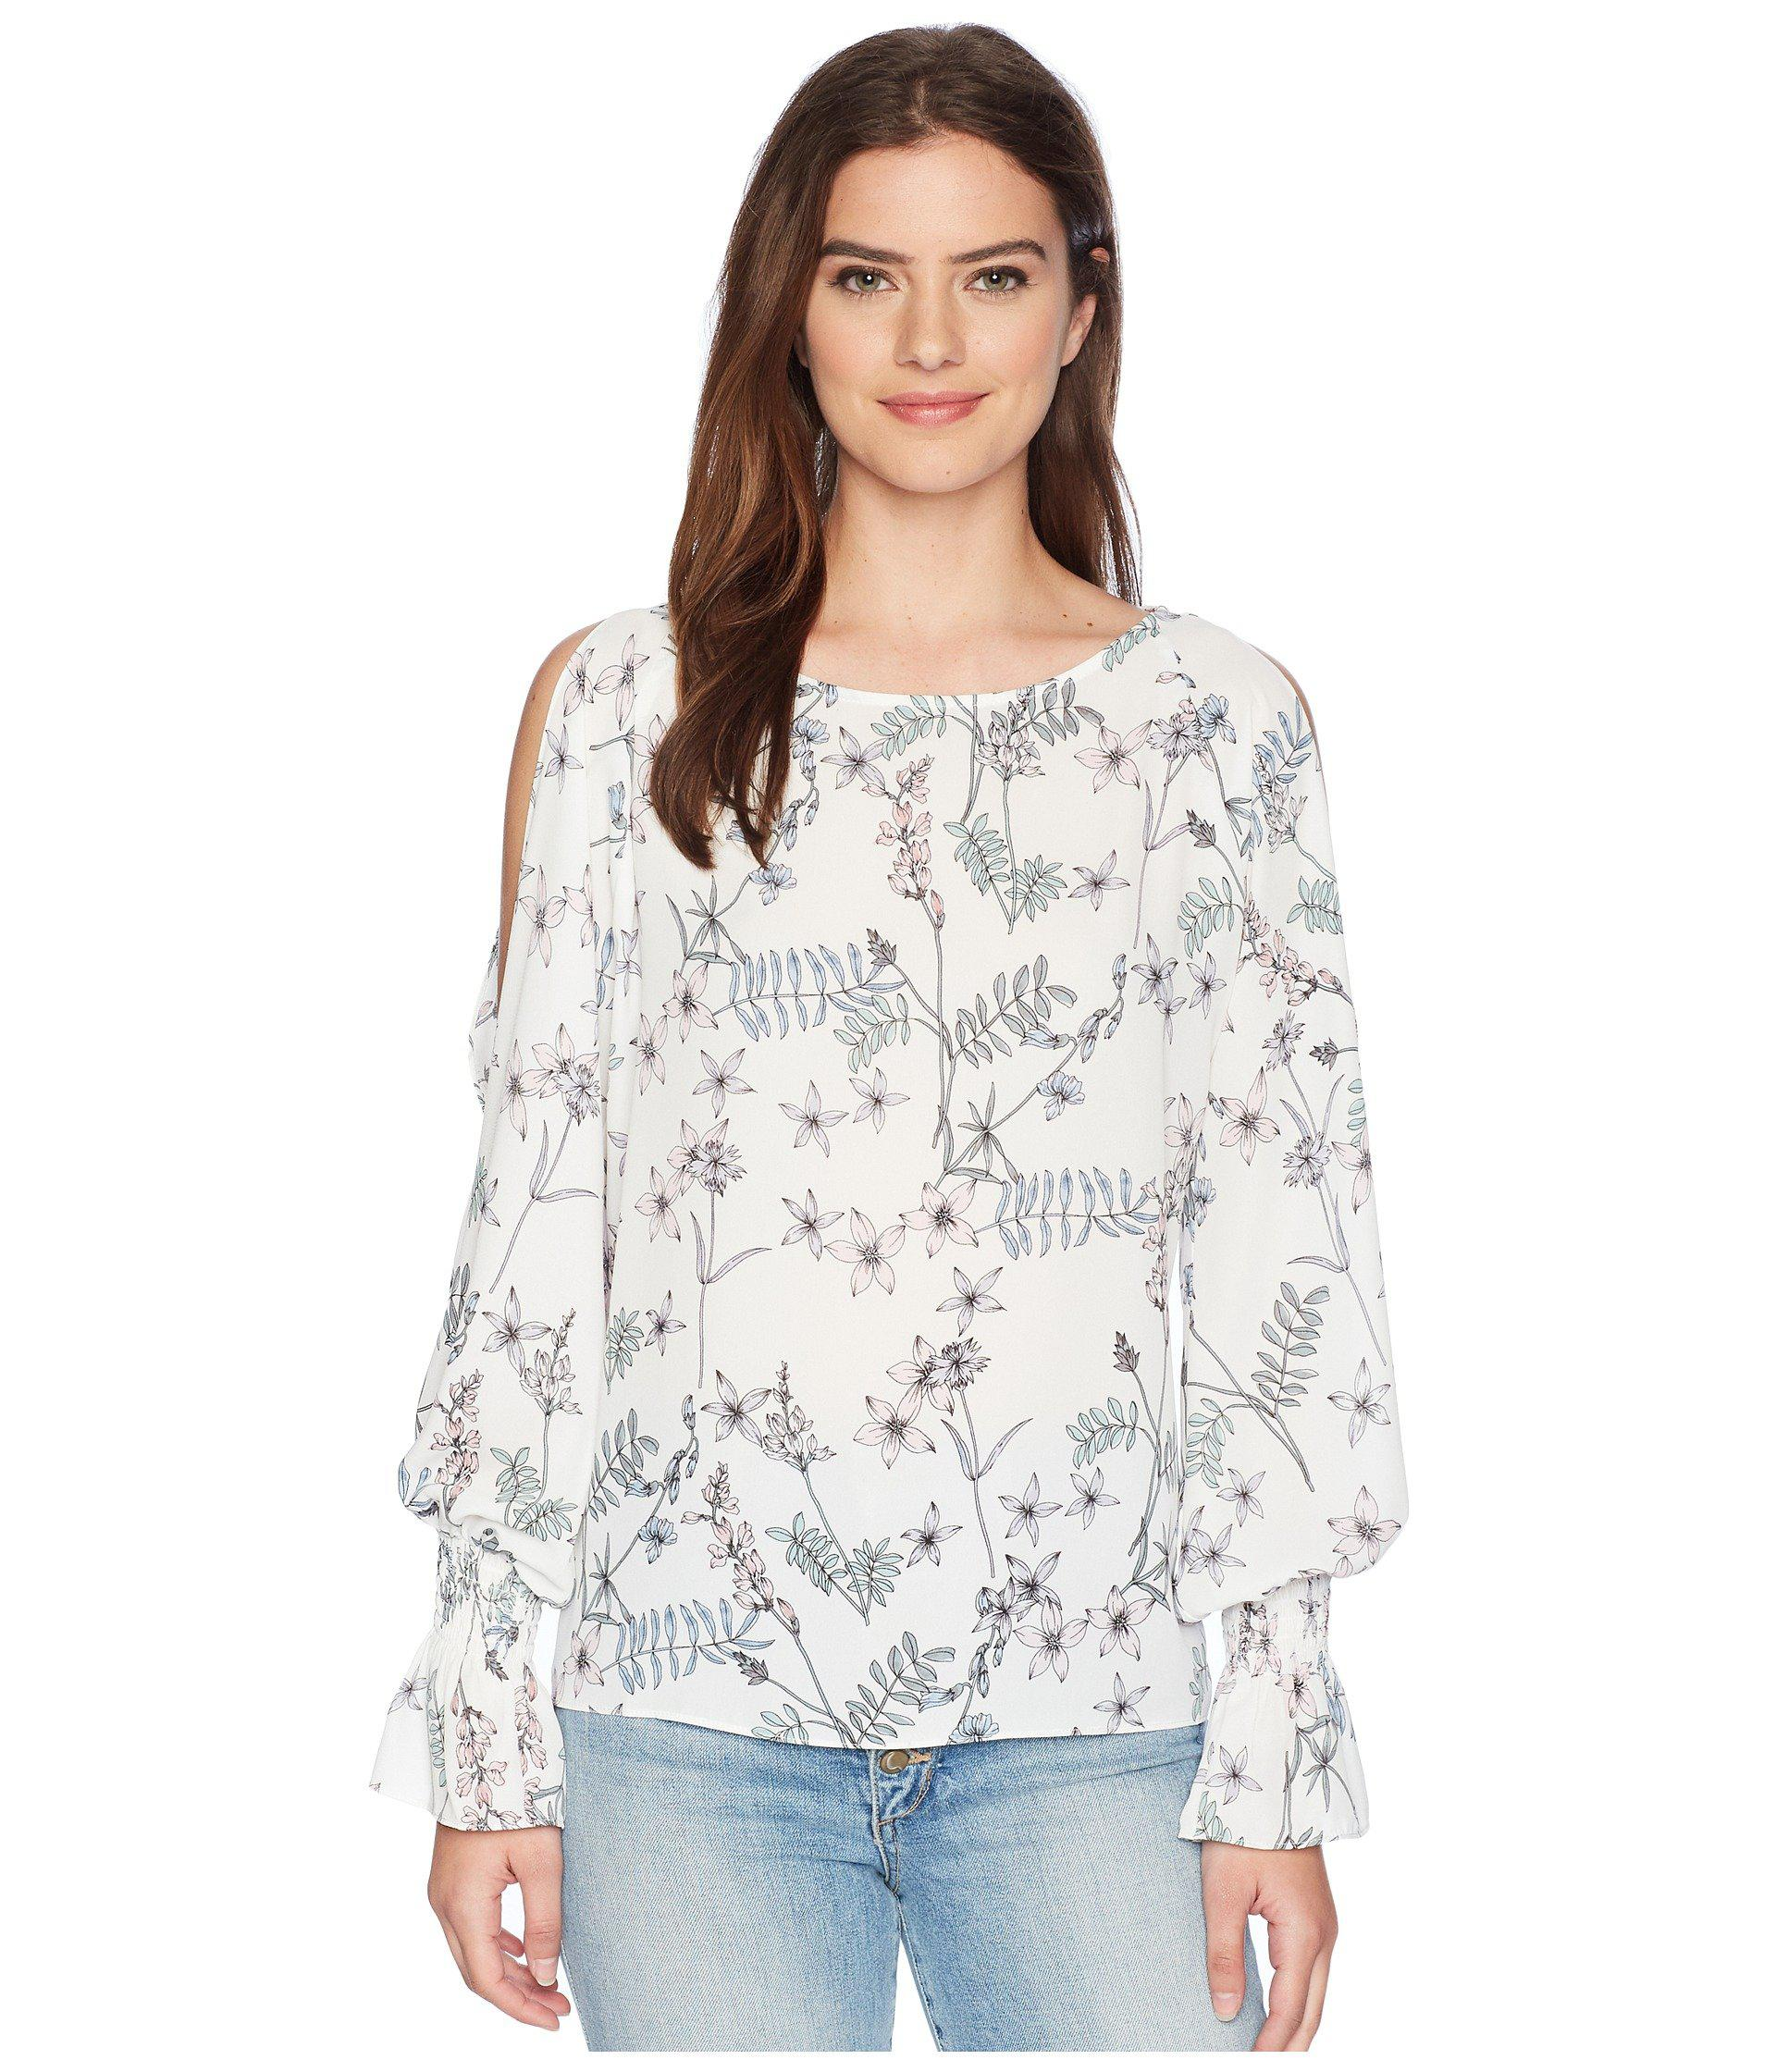 a309977b725ac Vince Camuto. Women s White Long Sleeve Flare Cuff Cold Shoulder Botanical  Floral Blouse